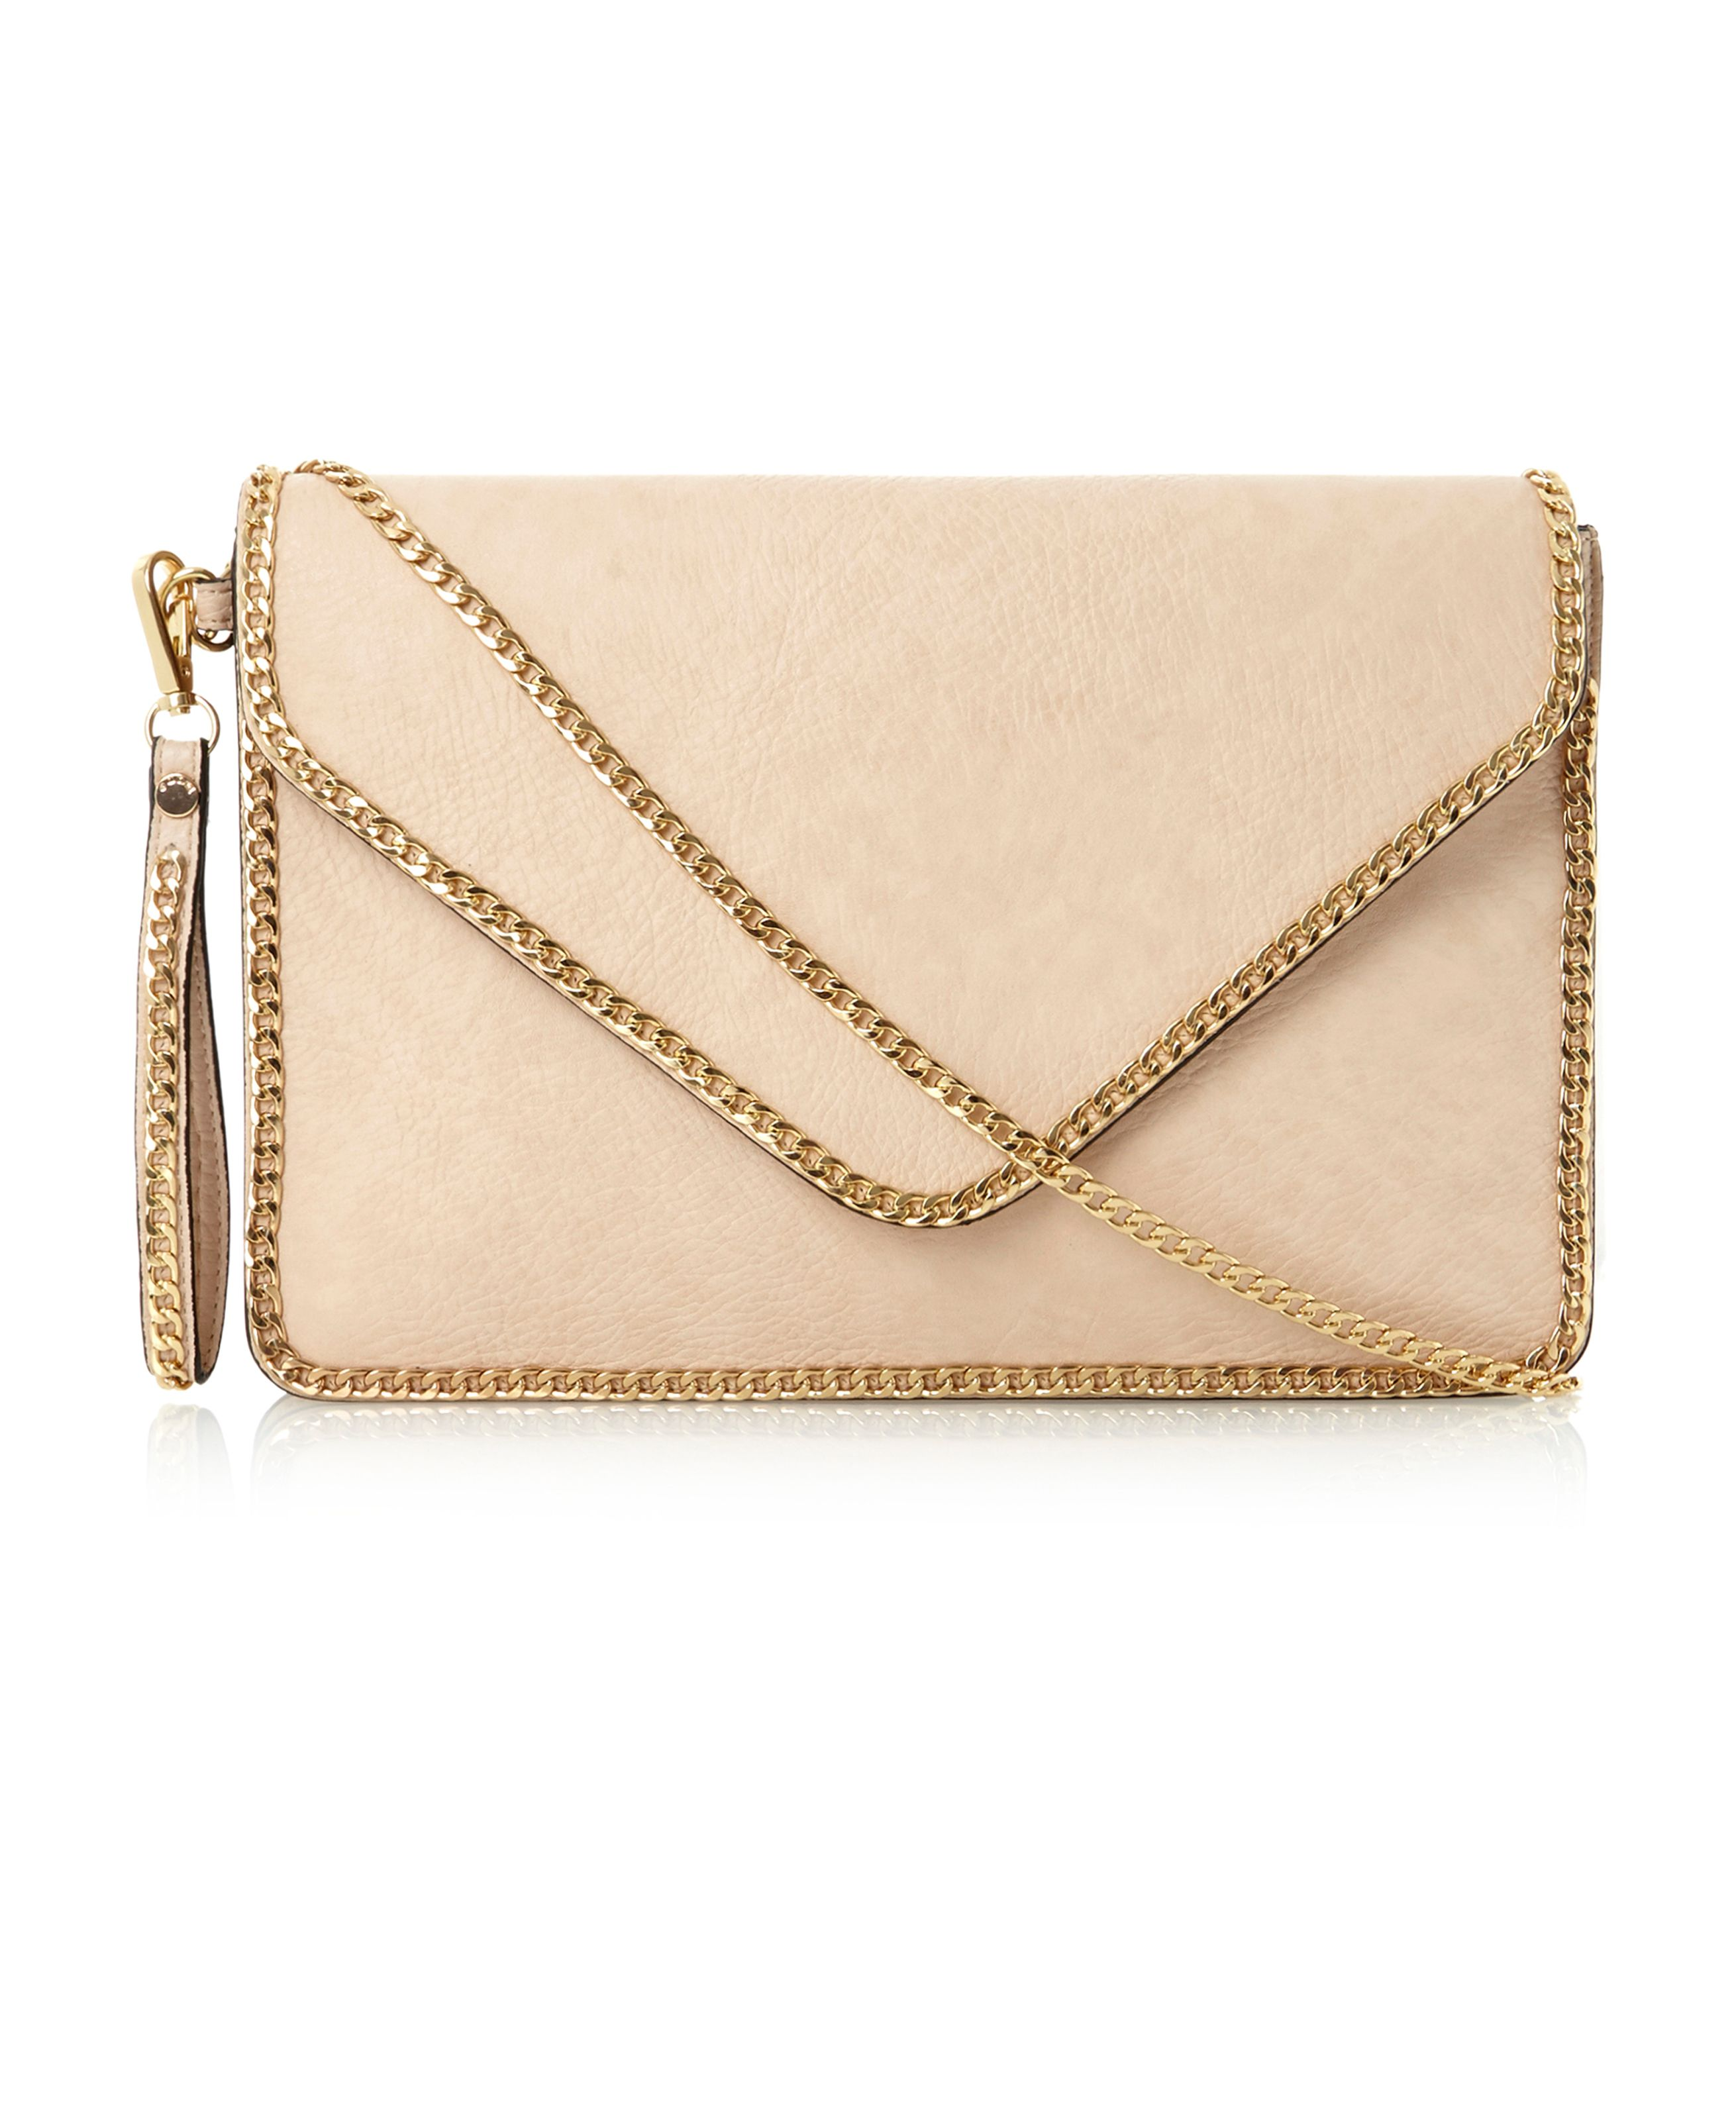 Echainy chain trim clutch bag